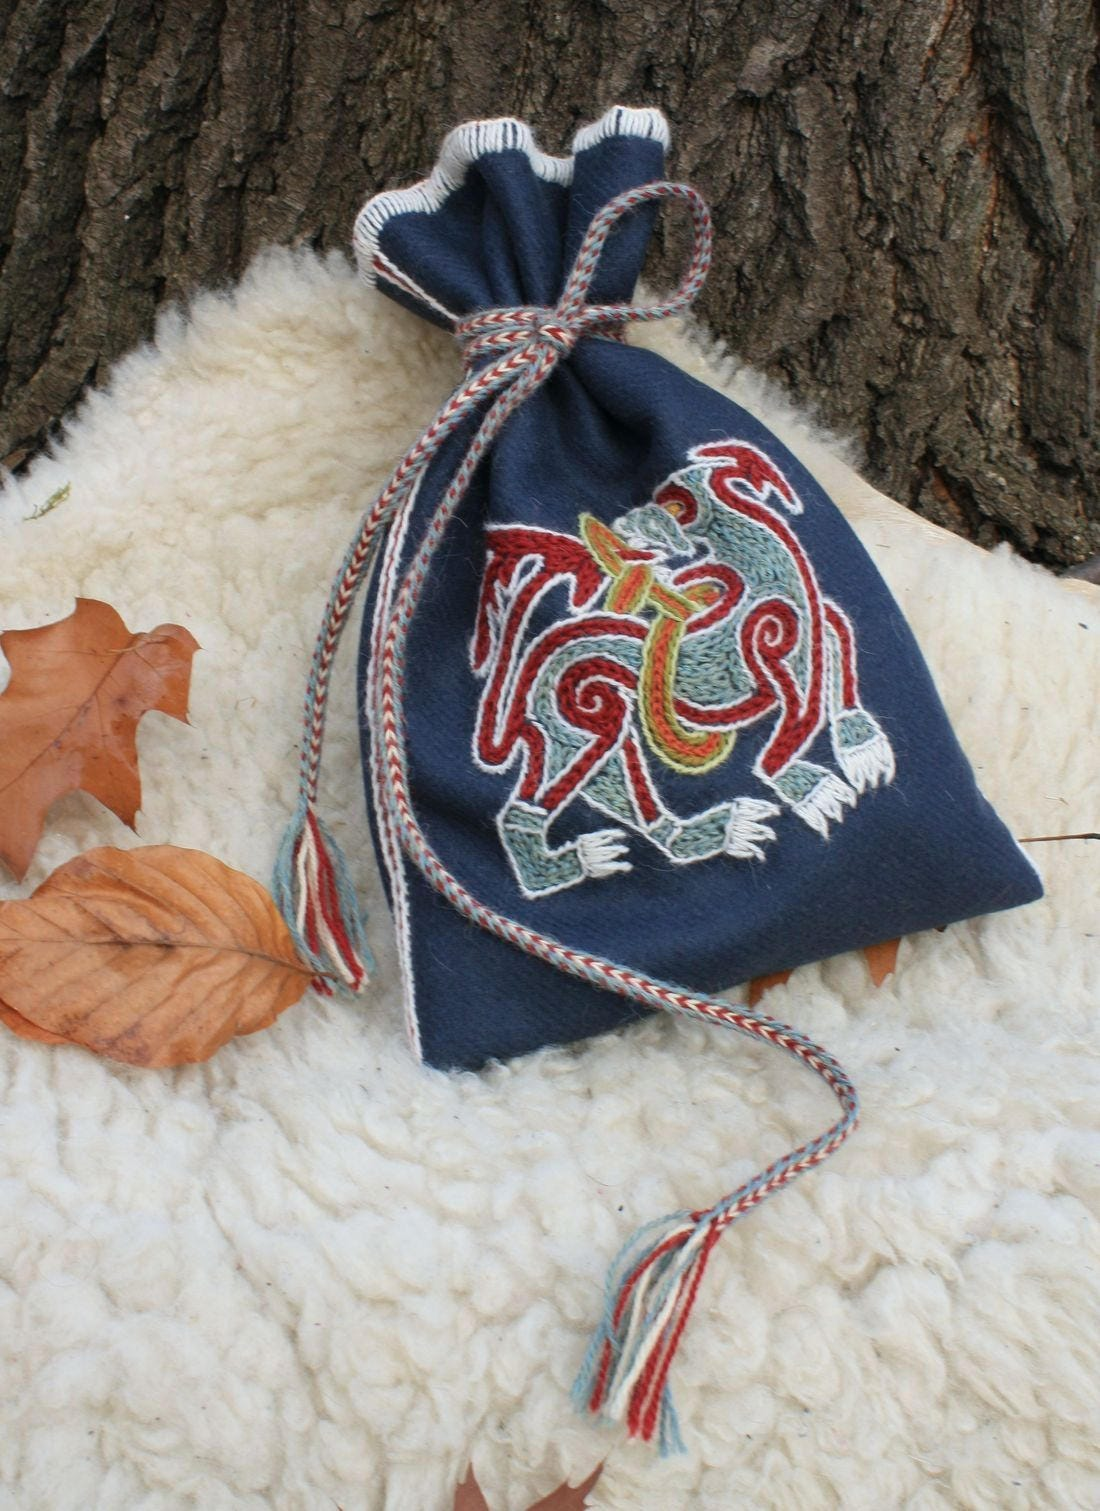 VIKING POUCH TEXTILE Mammen Art Denmark Viking Beast Vikings Pagan Pagans Costume Accessory Coin Bag Sca Living History Early Middle Ages